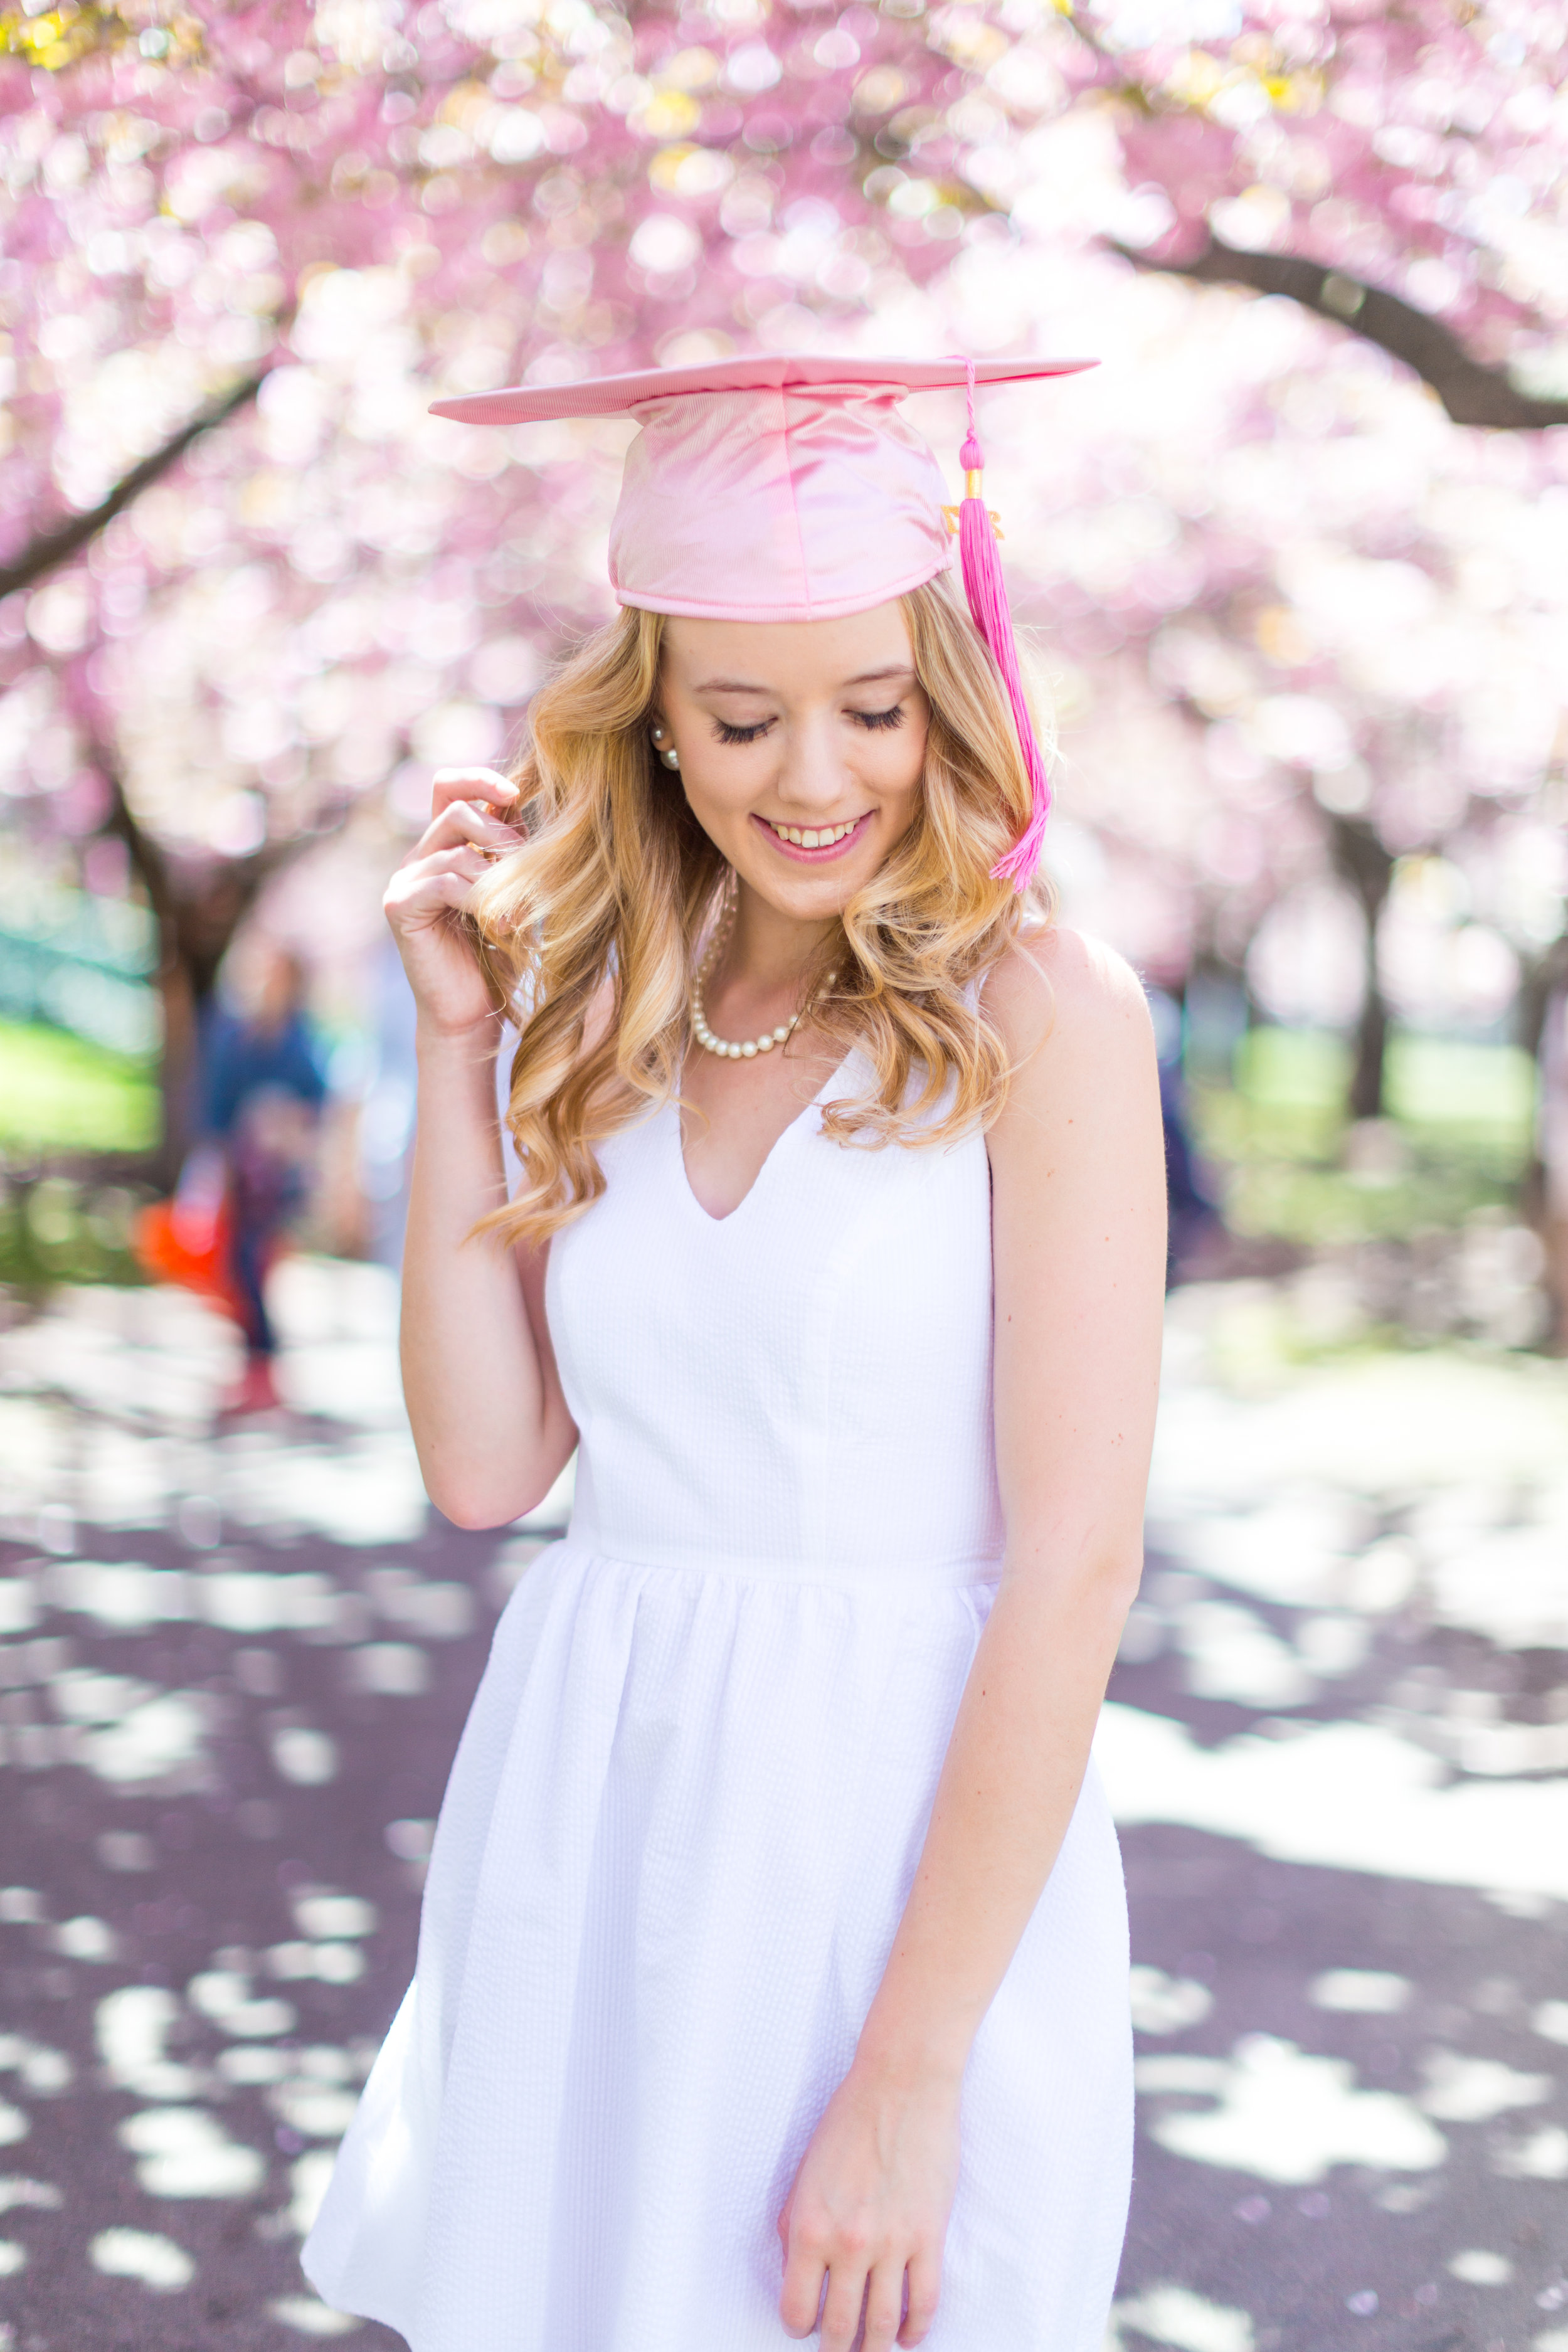 White Graduation Dress Spring Pink Cherry Blossoms NYC-5.jpg